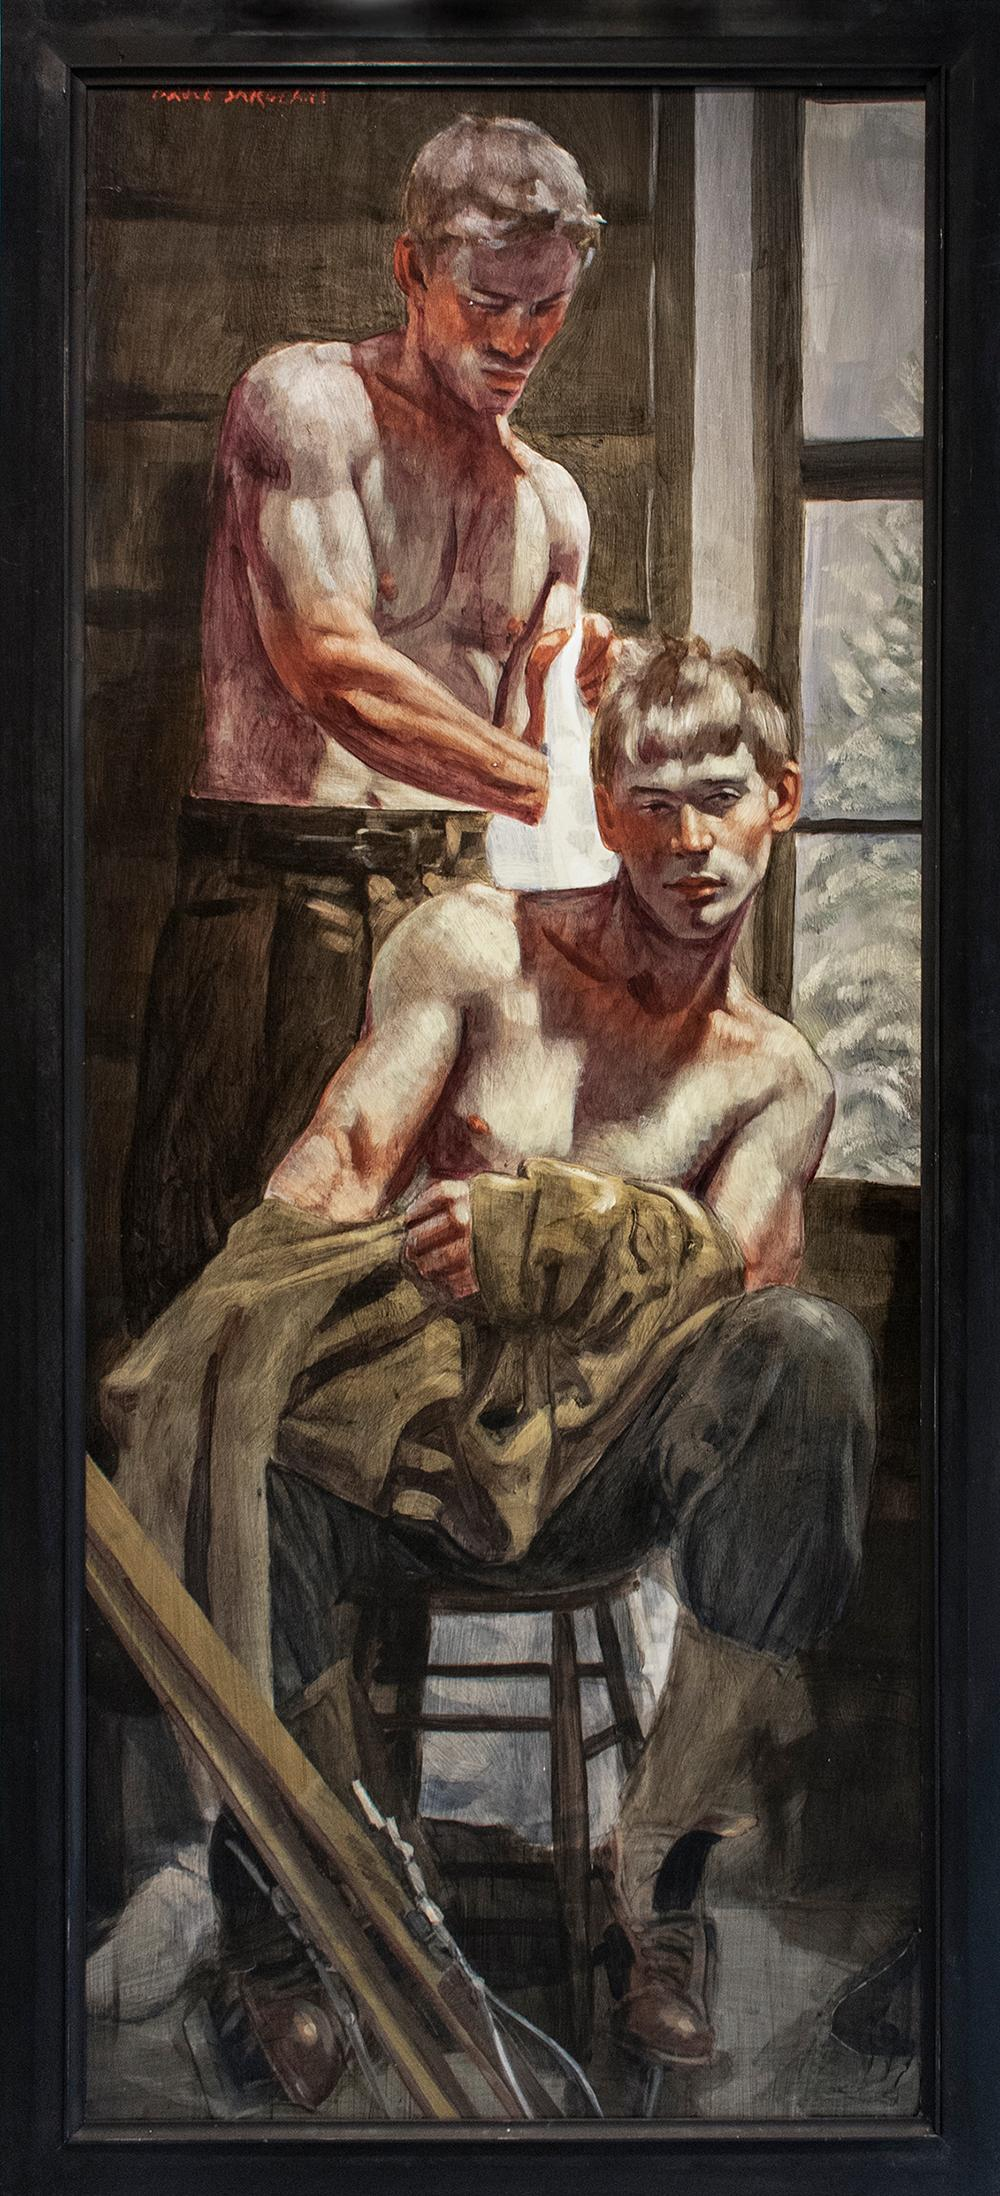 Dressing in the Lodge (Figurative Painting of Men, Mark Beard, Bruce Sargeant)